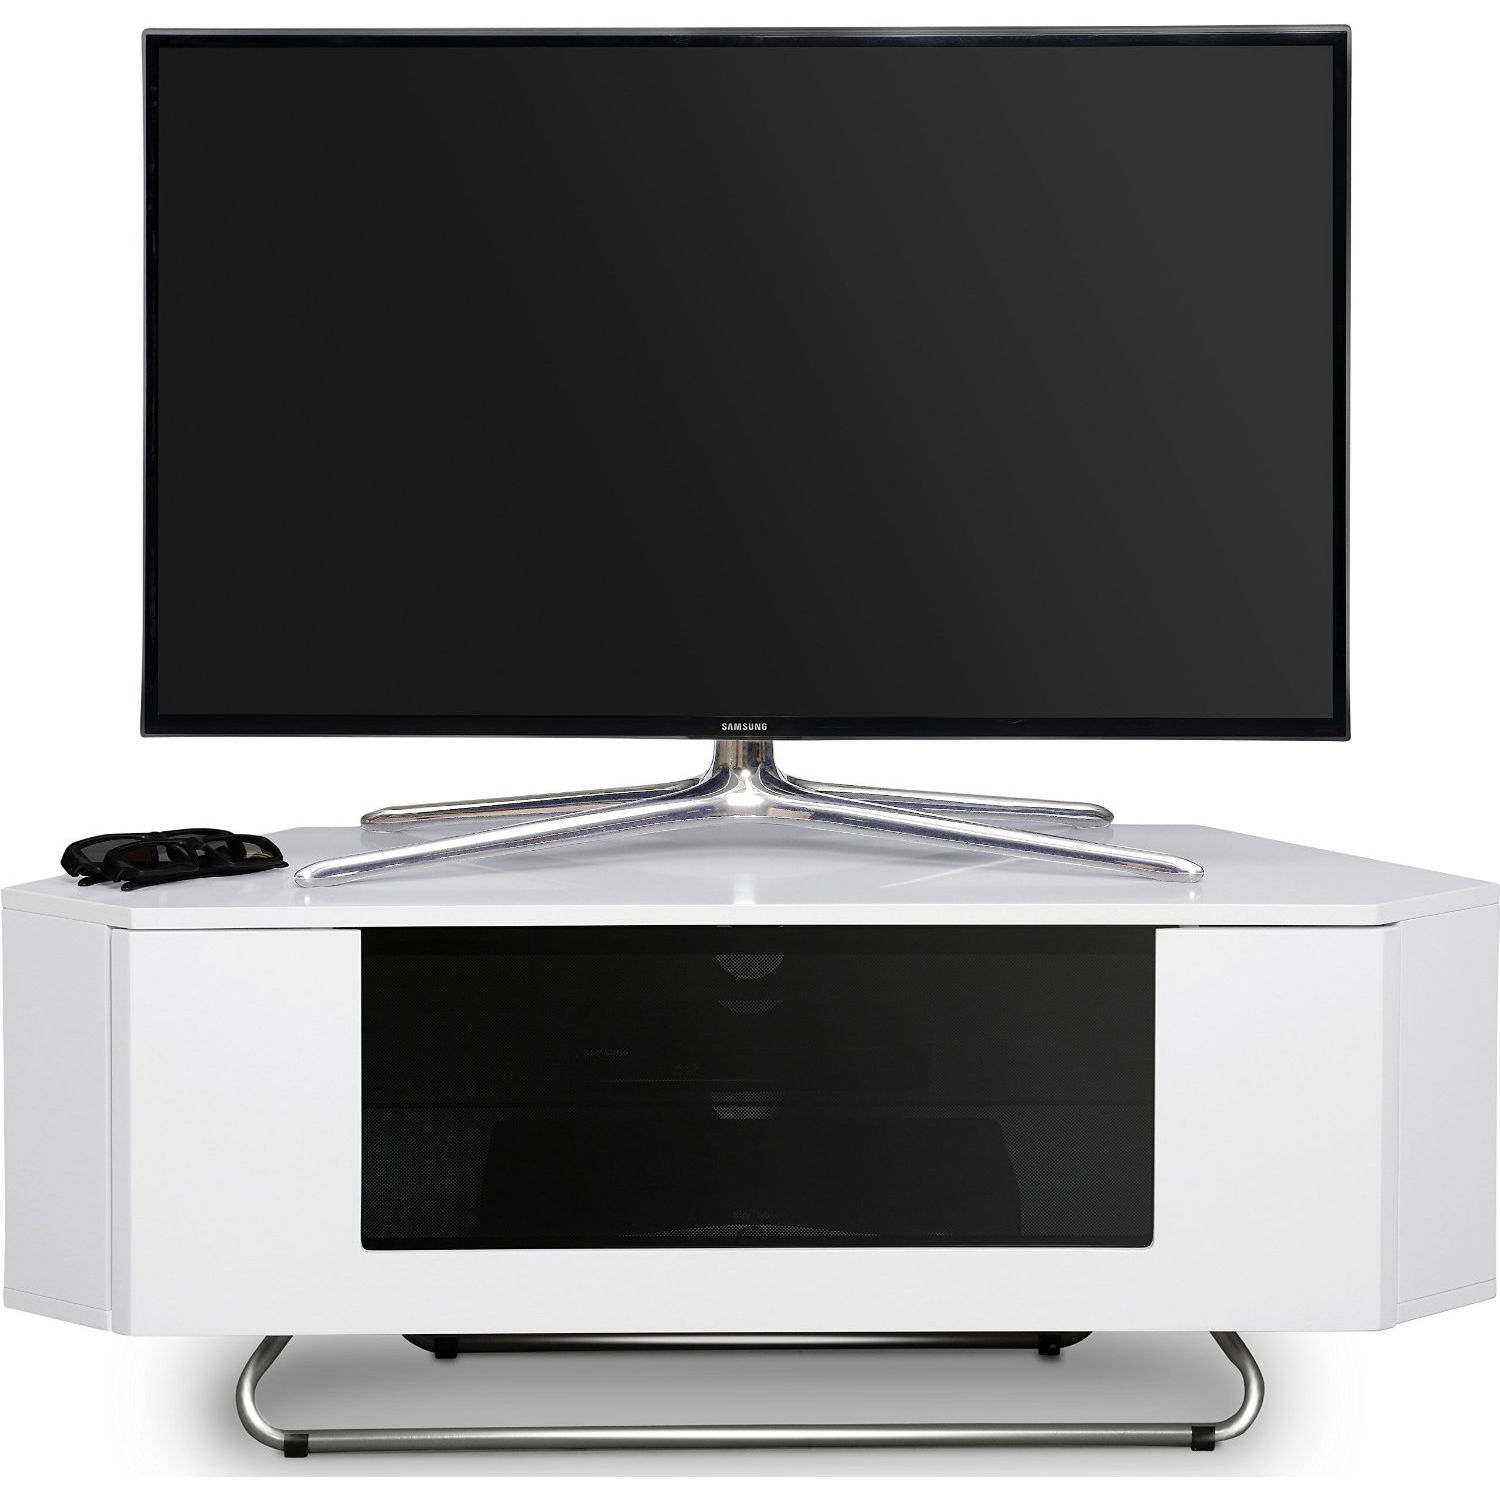 centurion supports hampshire gloss white beamthru 26 50 led tv ca. Black Bedroom Furniture Sets. Home Design Ideas